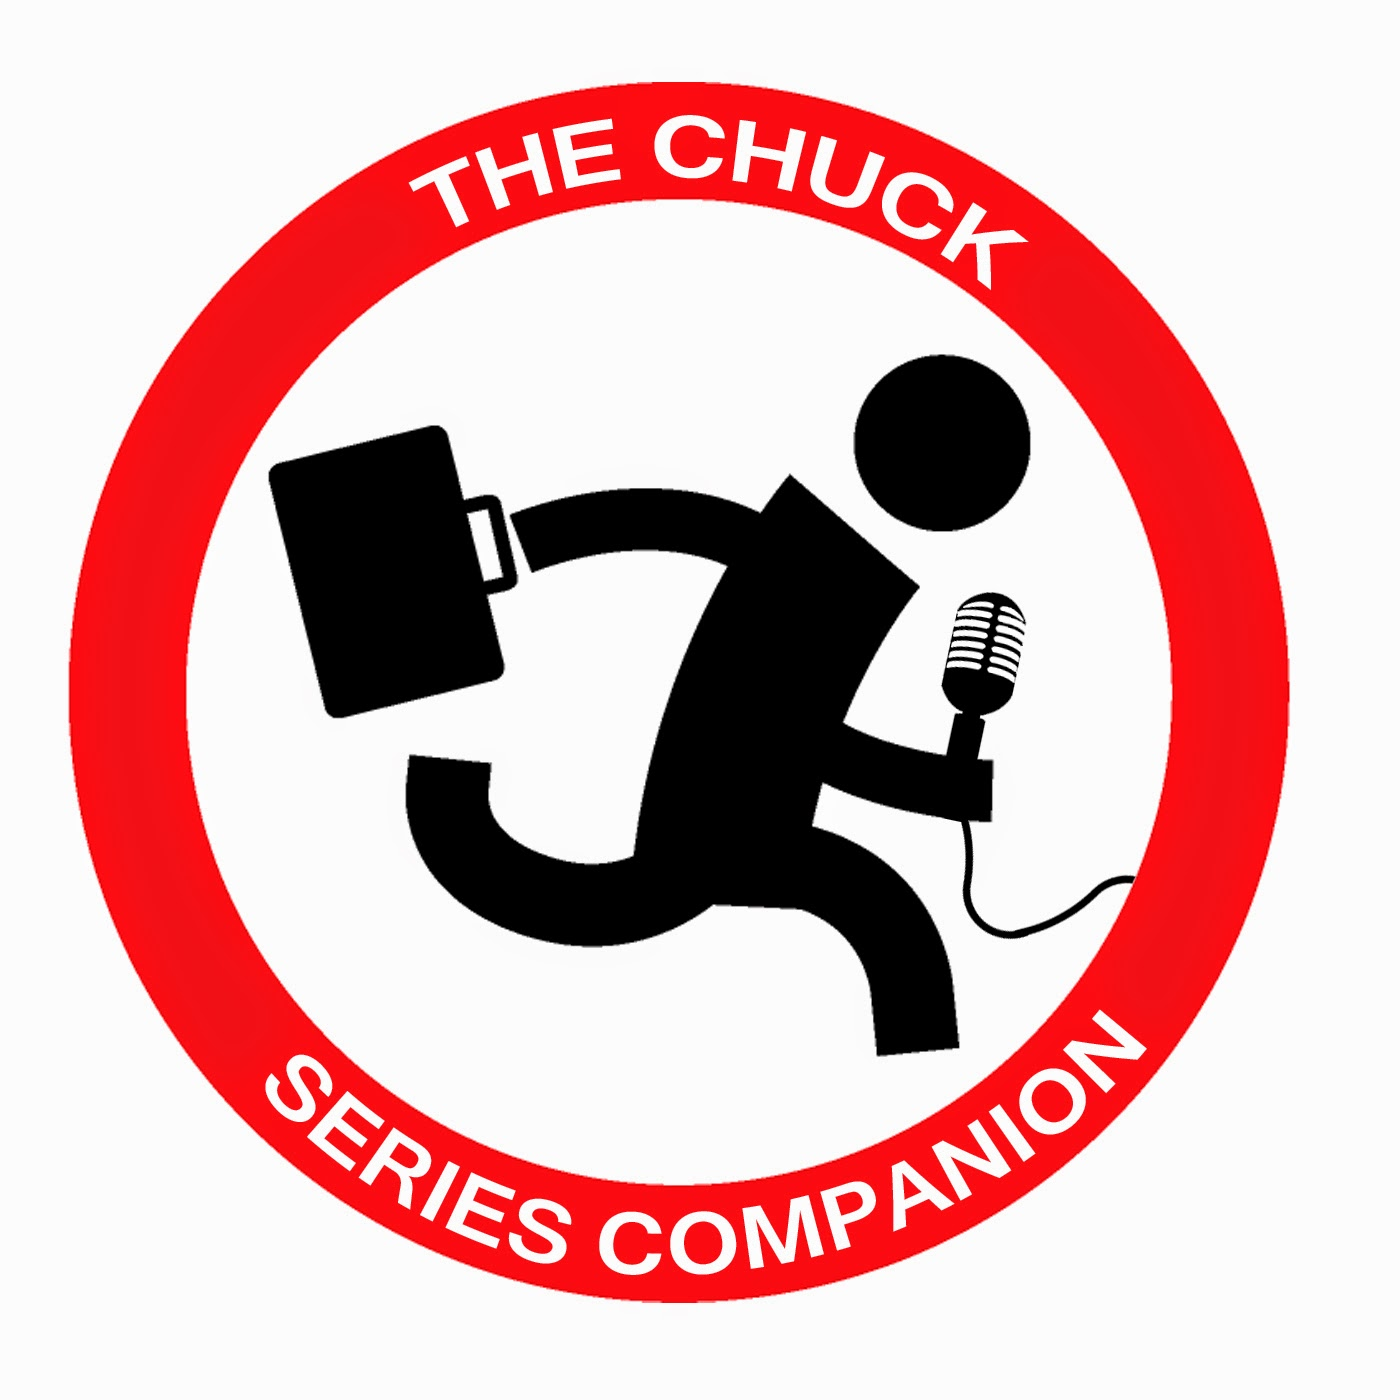 The Chuck Series Companion